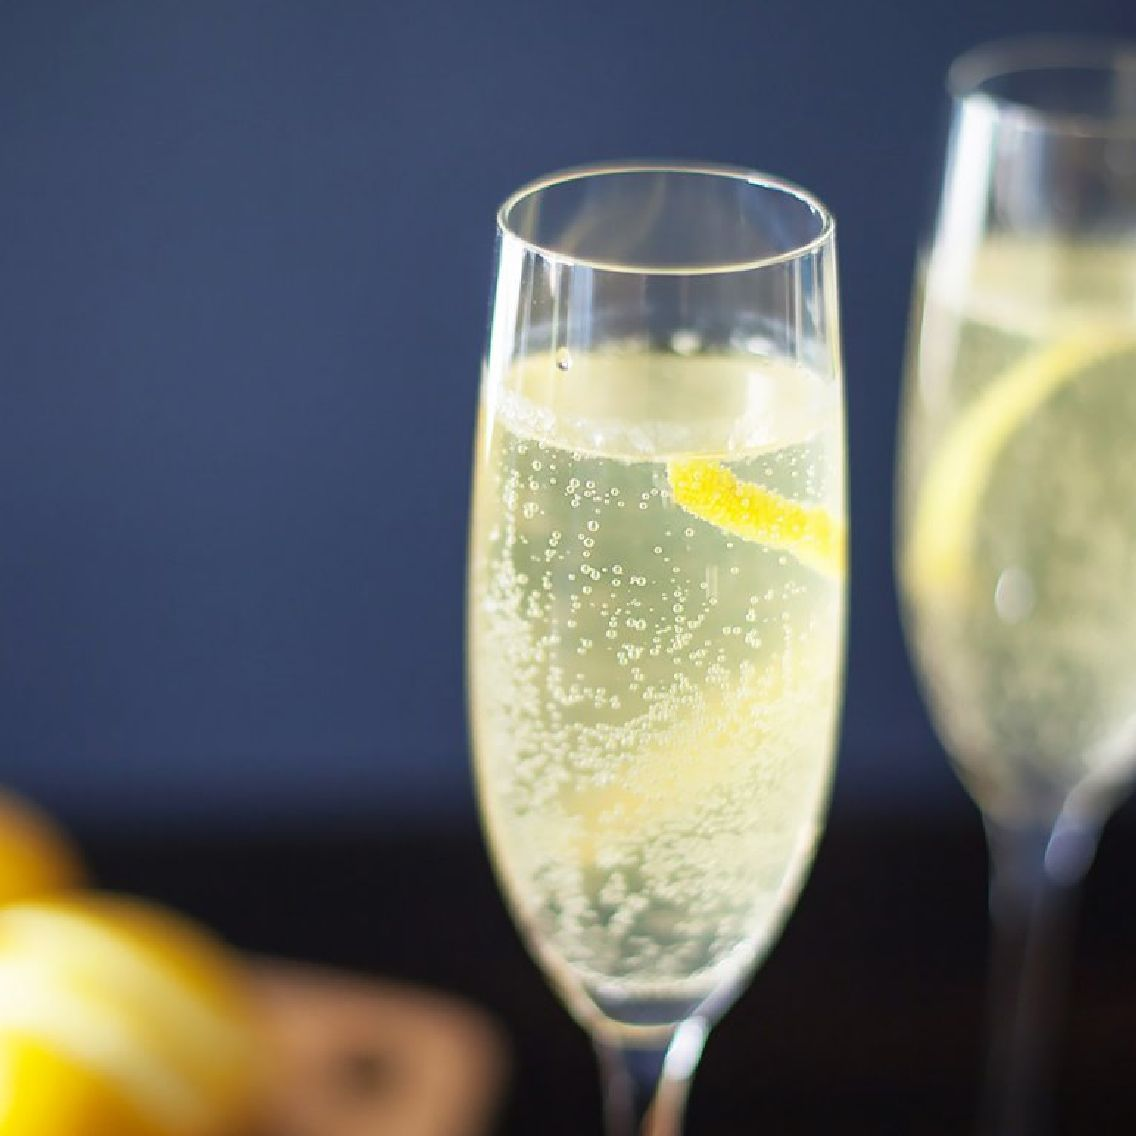 A drink that combines two of our favorite ingredients – Fords Gin & Champagne.  Named after the 75mm field cannon utilized by the French forces in World War 1, this classic tipple originated in Paris, circa 1915. The fresh lemon juice combines with the citrus peels of Fords Gin to give a bright and floral character to an already delightful sparkling and refreshing cocktail.